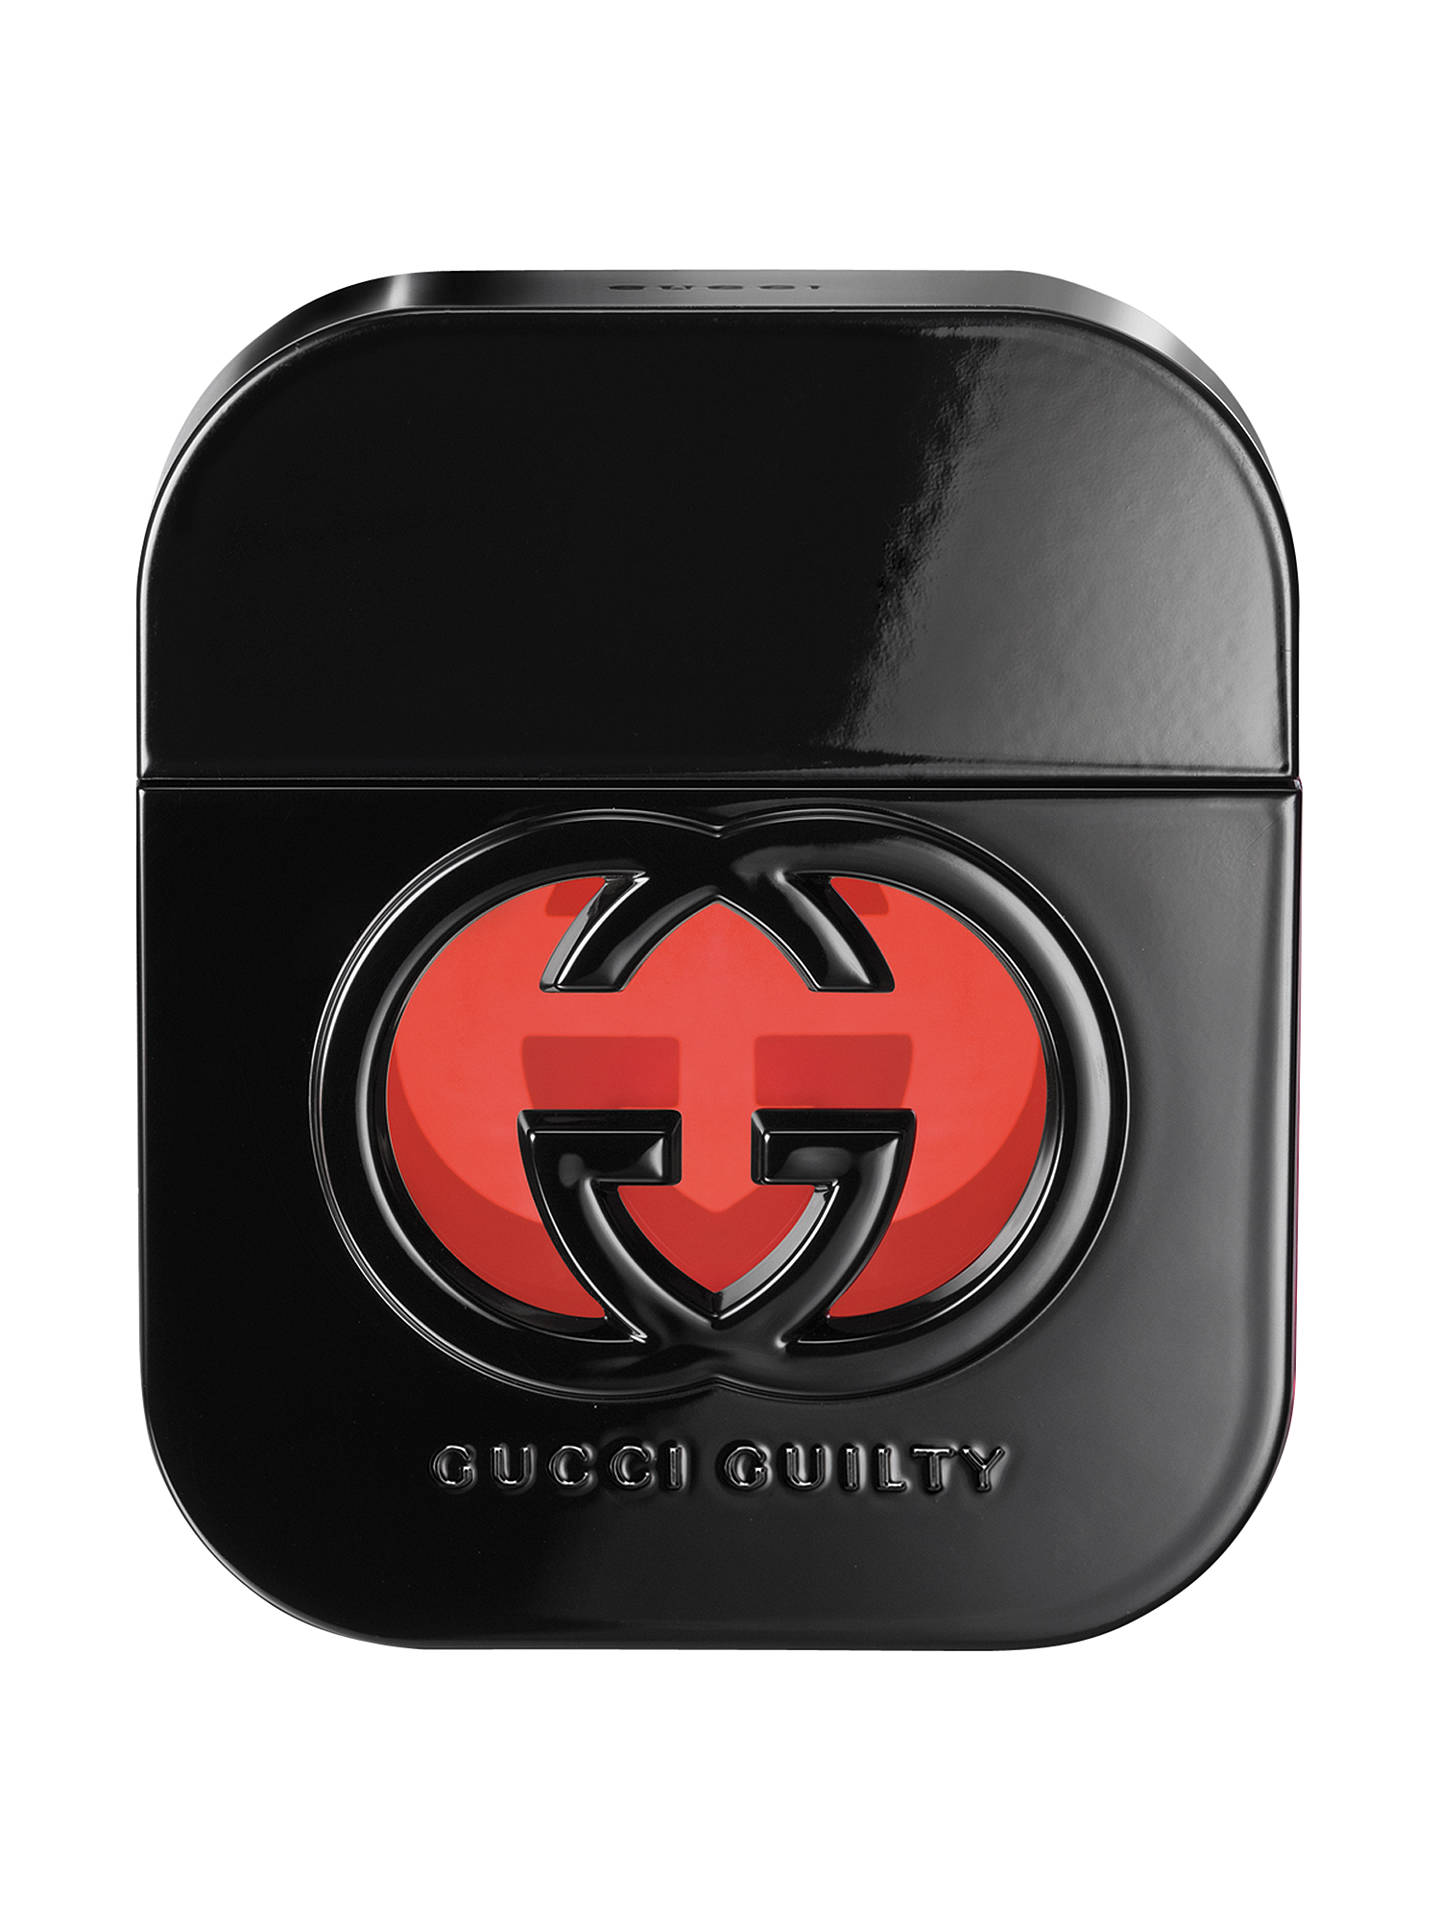 Gucci Guillty Black Eau De Toilette For Her At John Lewis Partners